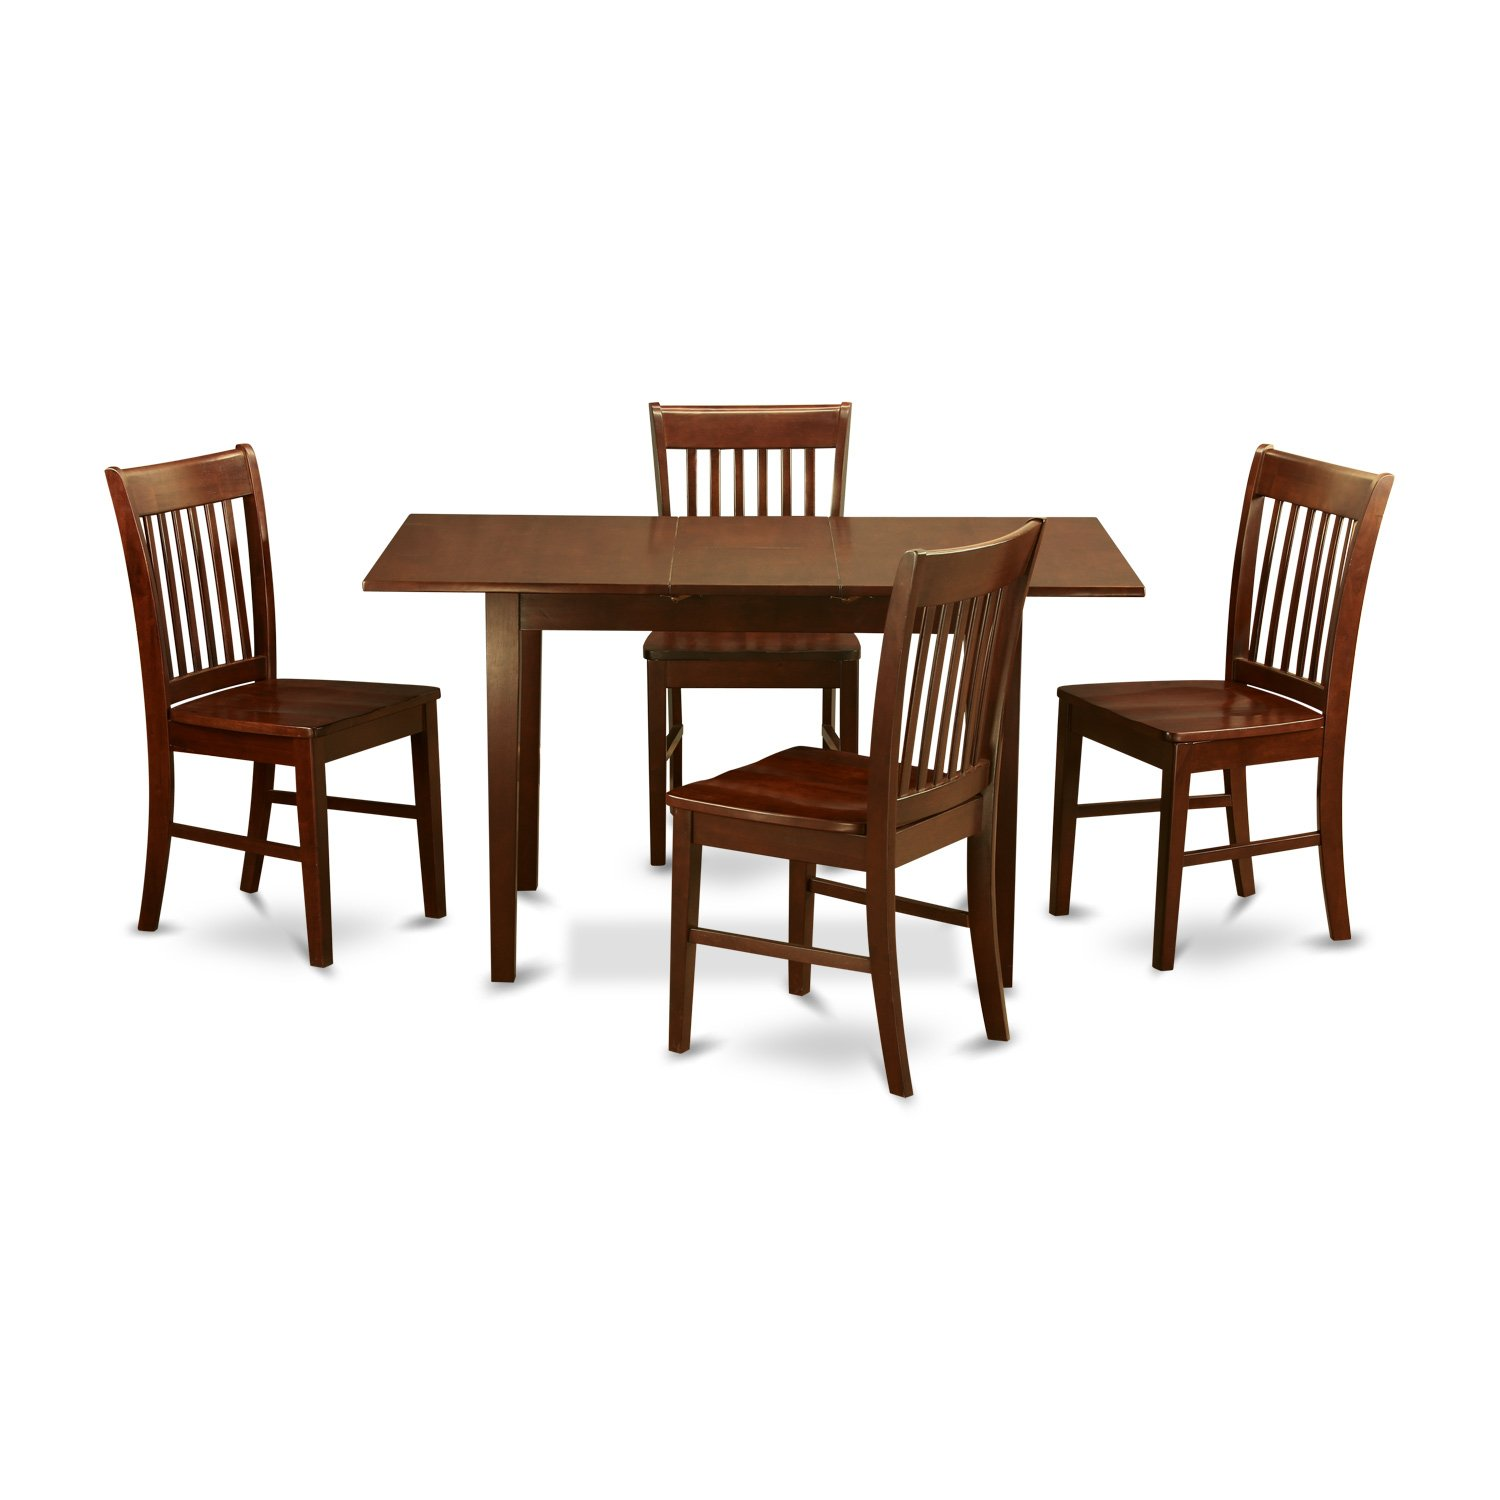 East West Furniture NOFK5-MAH-W 5-Piece Kitchen Table Set, Mahogany Finish